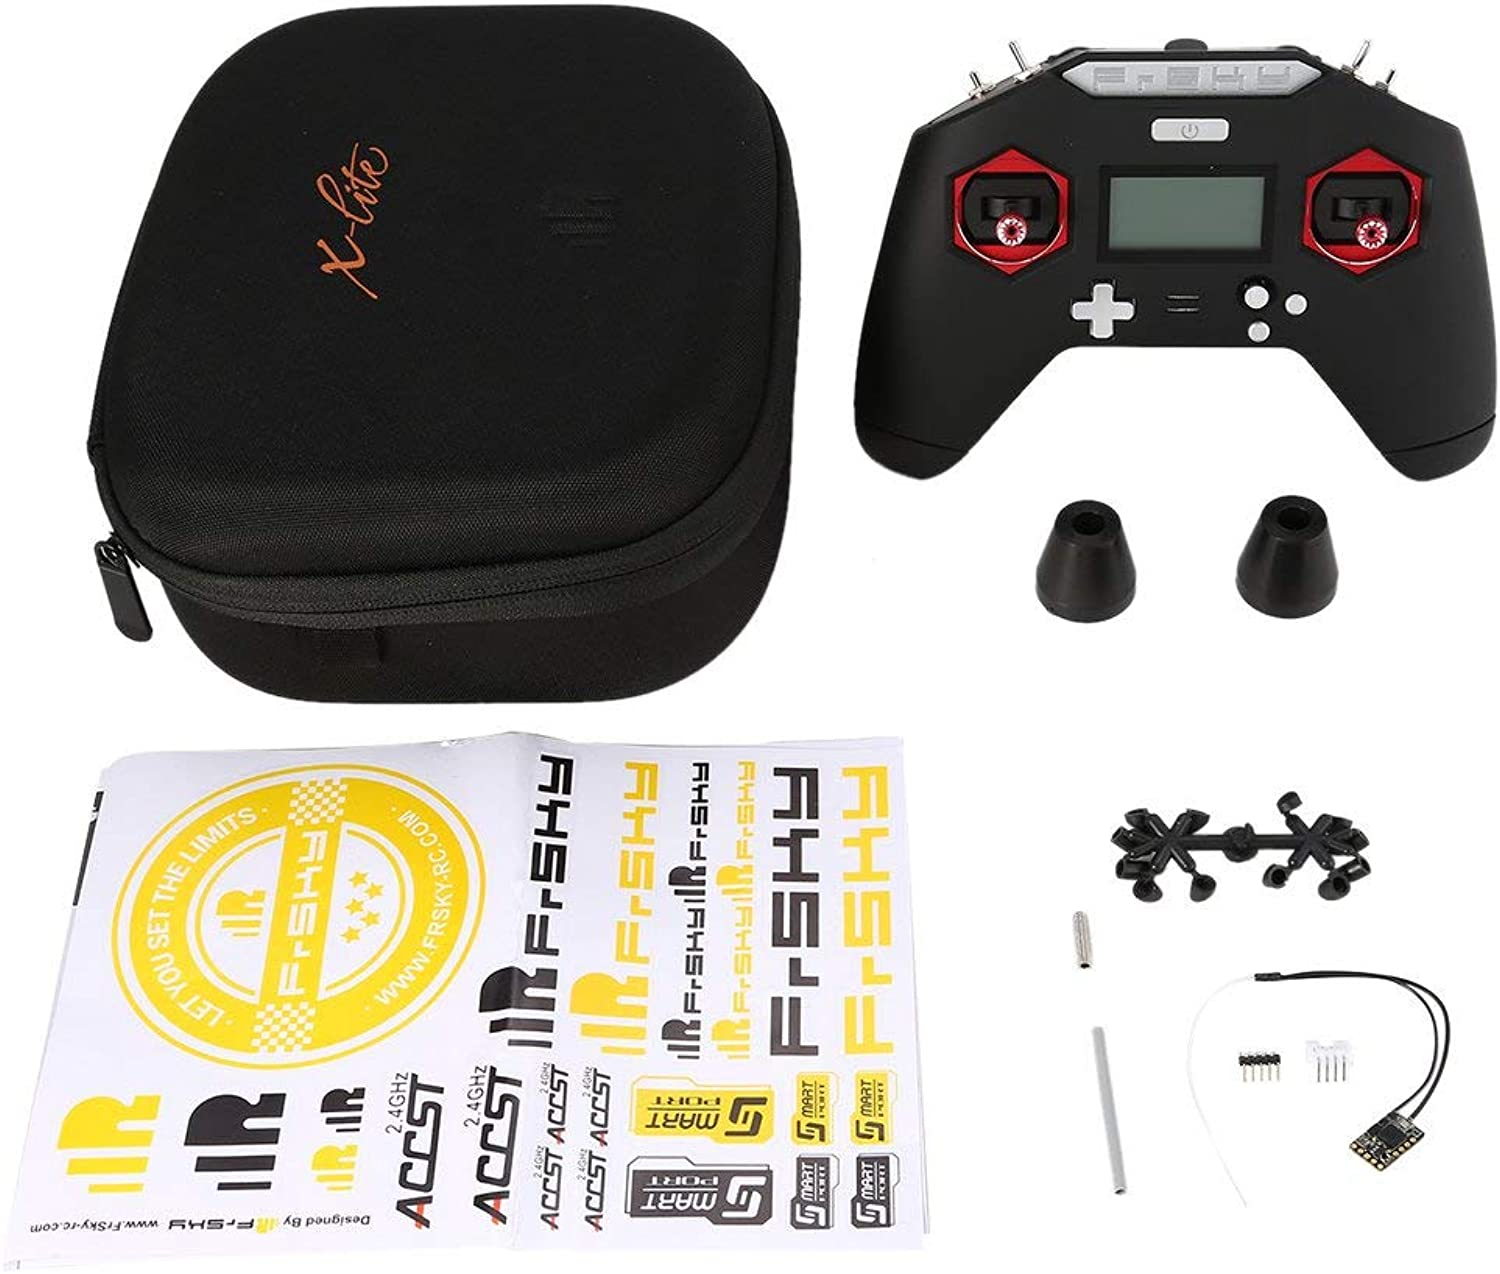 MqbY FrSky Taranis X-LITE 2.4GHz ACCST 16CH RC Transmitter Remote Controller W  R9 MM Receiver for RC Racing Drone Models